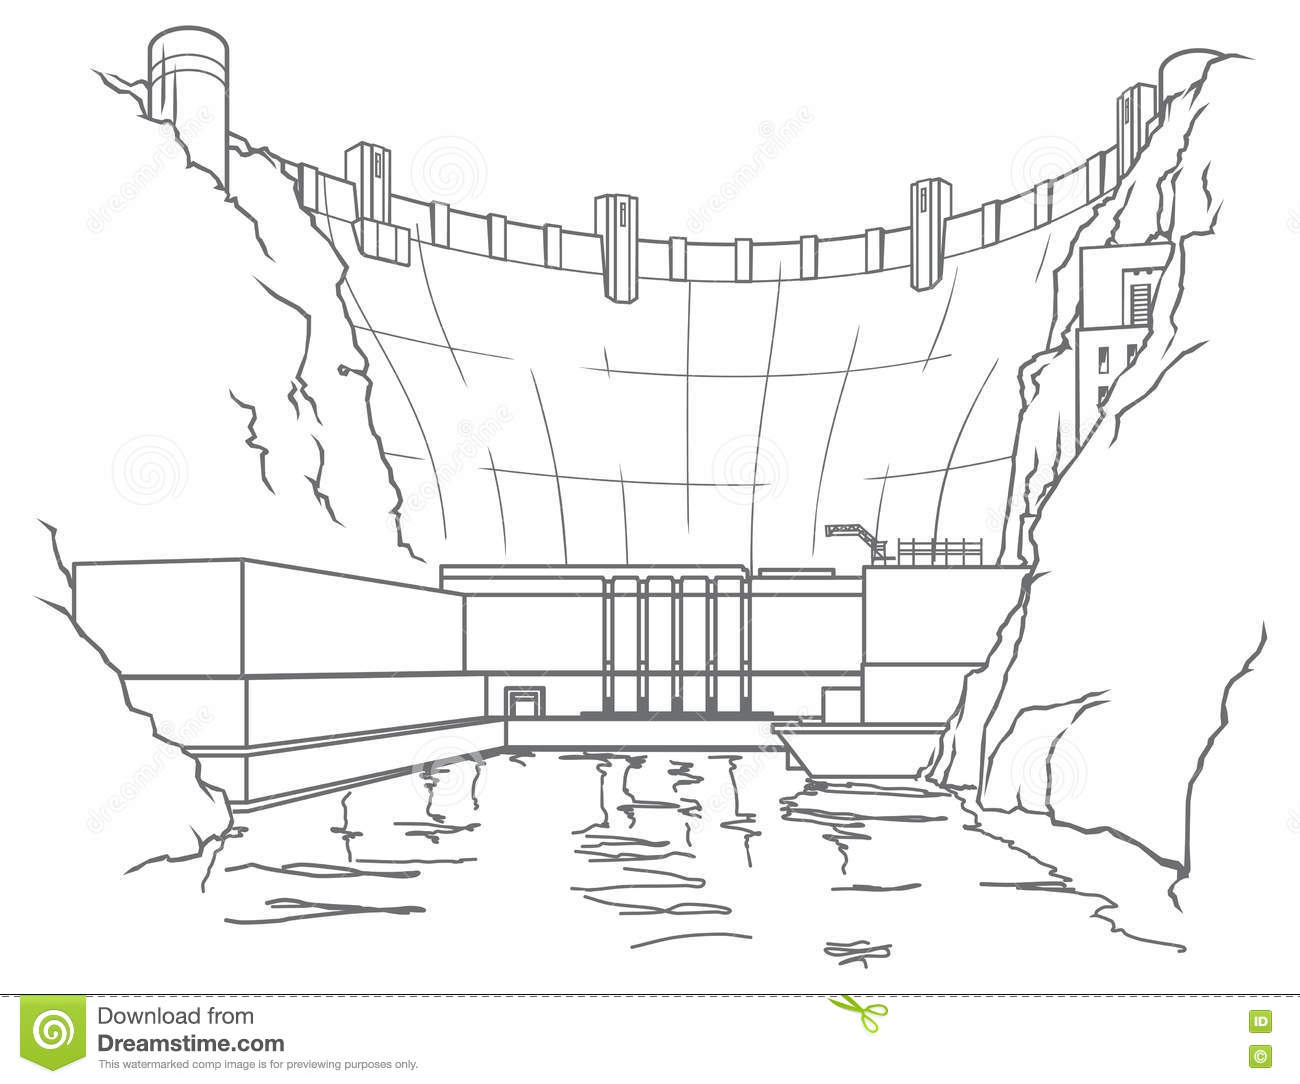 Outline Hydroelectric Dam Stock Vector Illustration Of